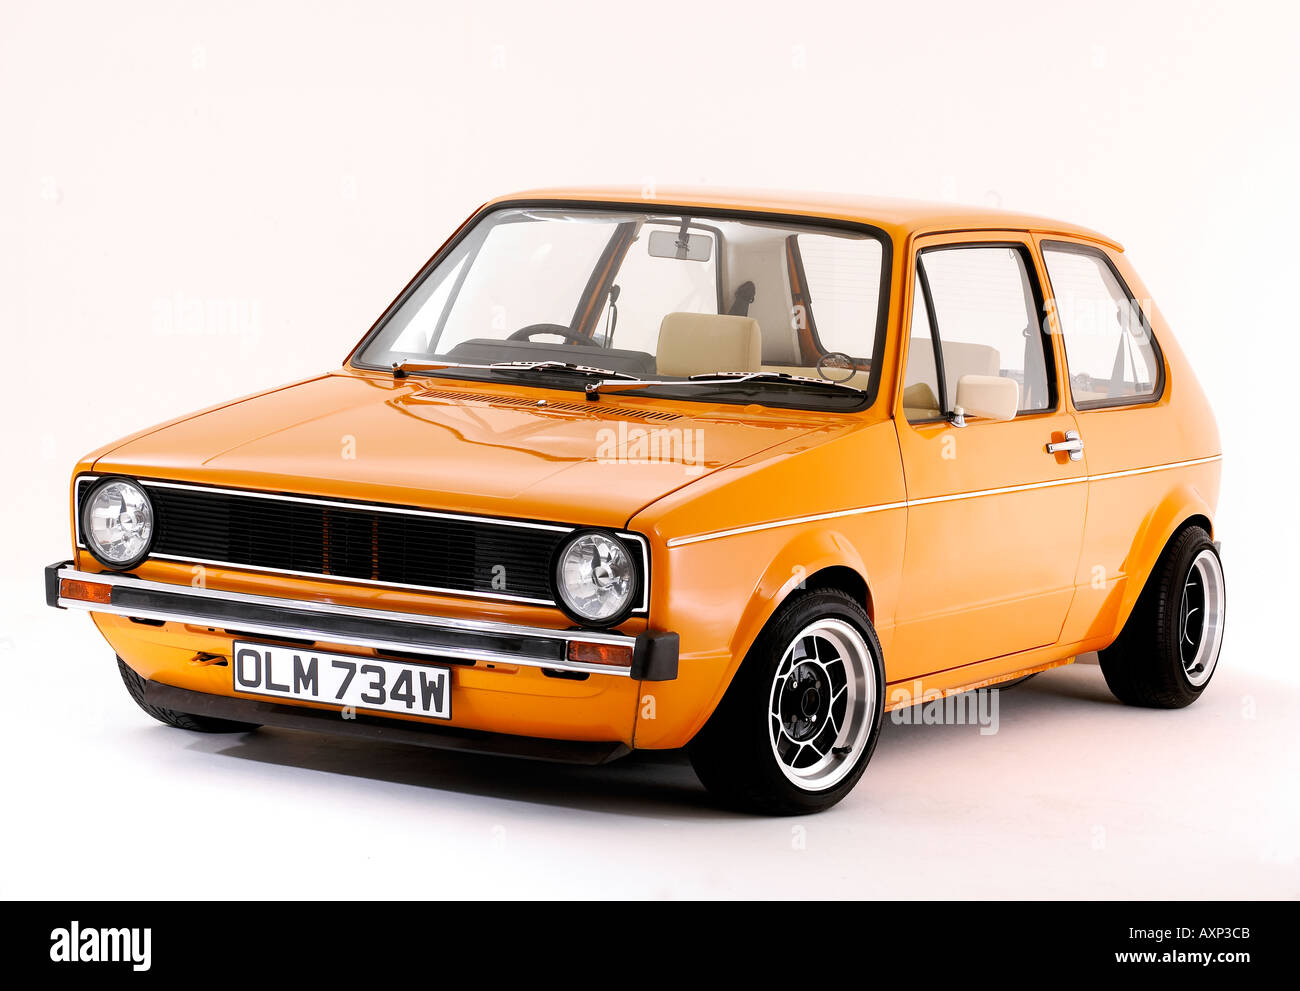 Vw Golf Mk1 High Resolution Stock Photography And Images Alamy